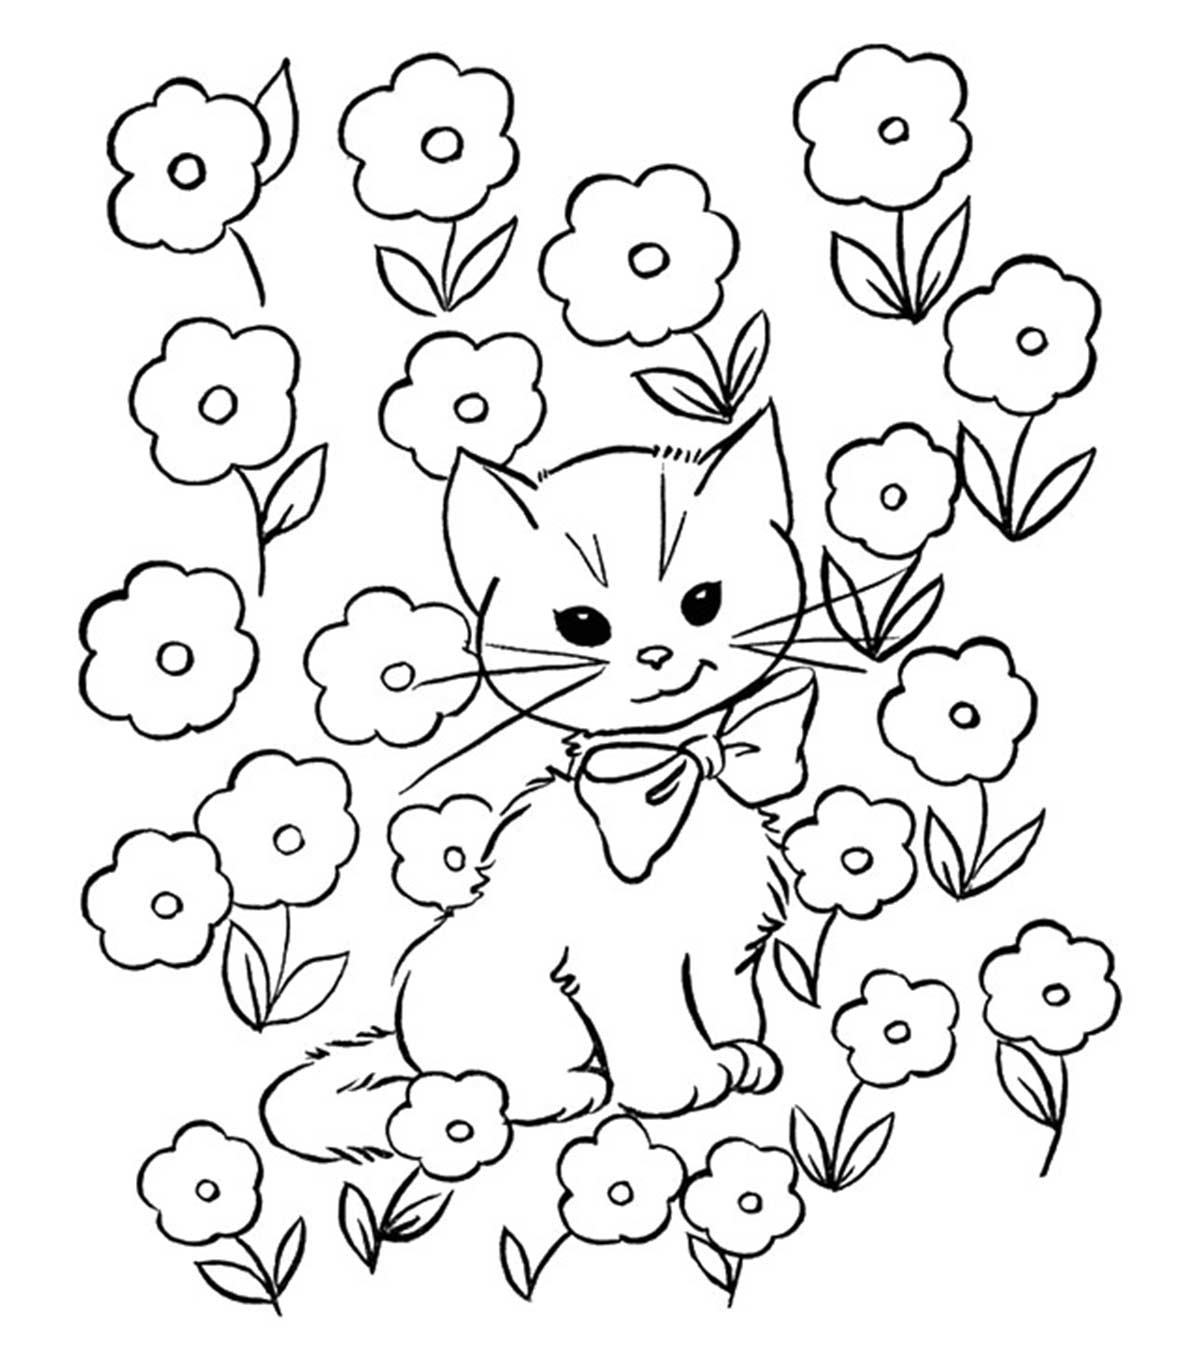 cat coloring pages – edenolur.co